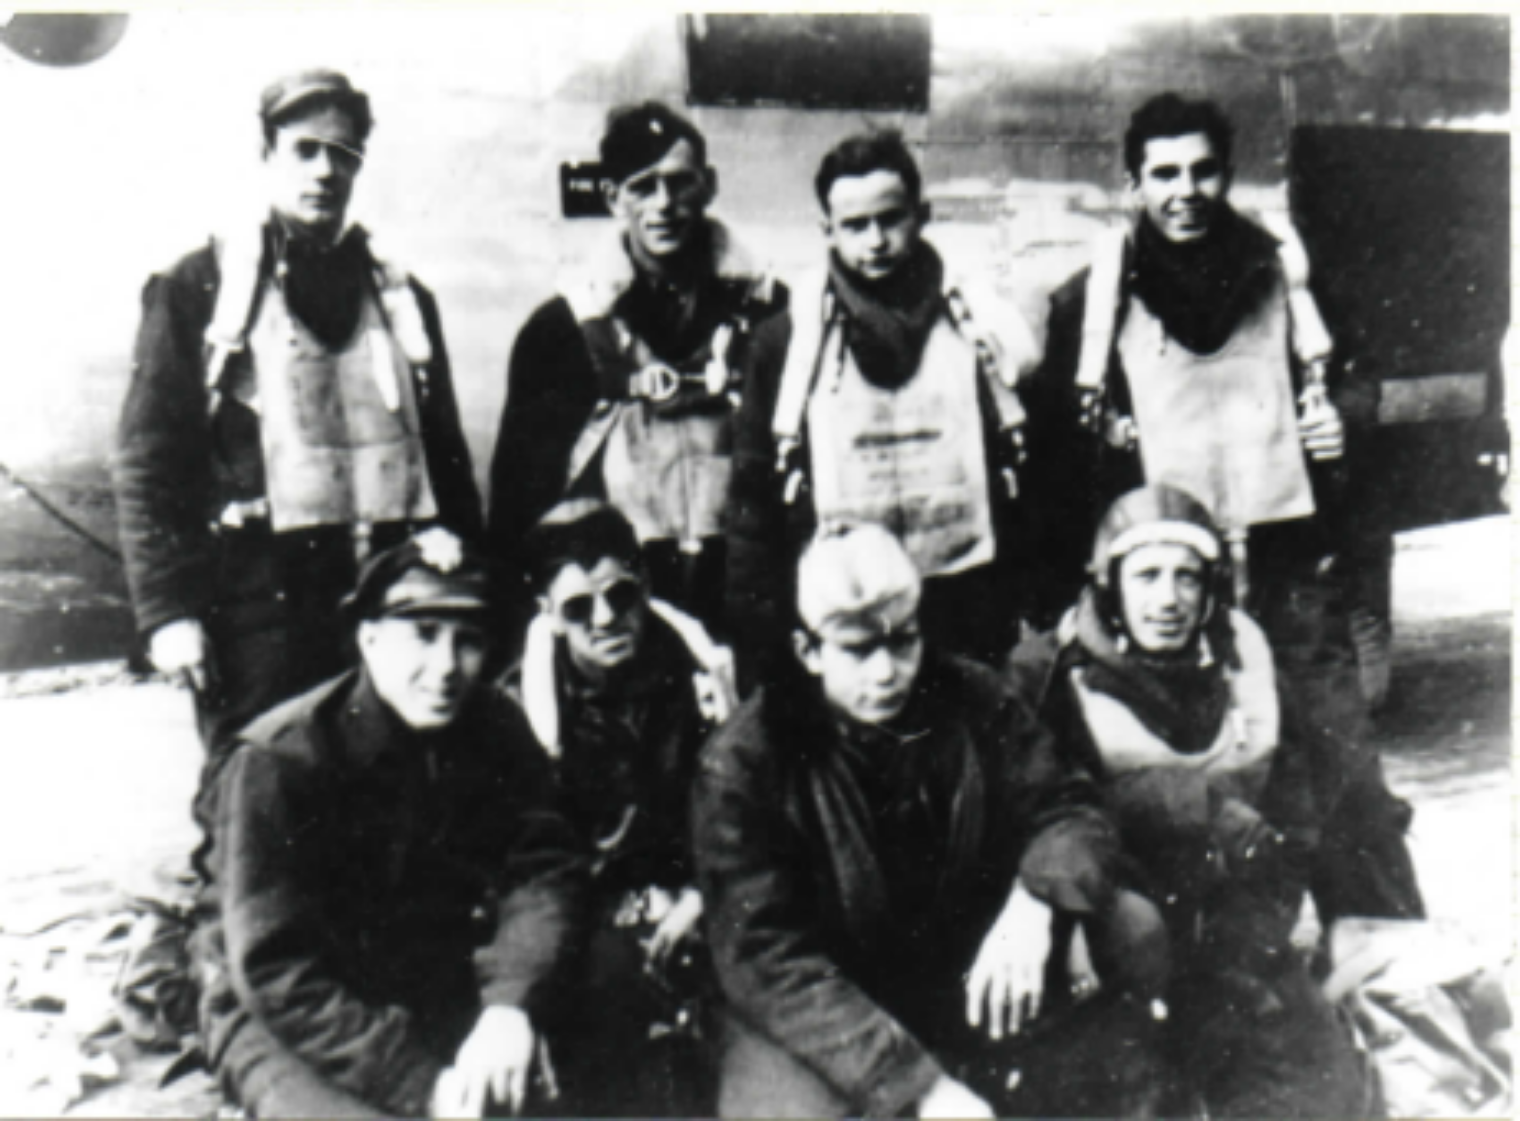 Back row, L to R: S/Sgt. Stephen Gray, Eng. POW; 2nd Lt. Palmer M. Bruland, Pilot, POW; Unknown; Unknown, POW. Front row: 2nd Lt. Norman J. Cuddy, Nav., POW,believed to be on left. Others on crew but not pictured include S/Sgt. Lee Huffman, waist gunner,and S/Sgt. Ferdinand Flach, nose gunner, both of whom were murdered after they parachuted down safely and were captured; T/Sgt. James H. Boman, radio operator, POW; S/Sgt. Hugh J. Sullivan, waist gunner, POW; S/Sgt.Charles M. Dove, tail gunner, POW. Also not pictured is copilot Peter Belitsos.